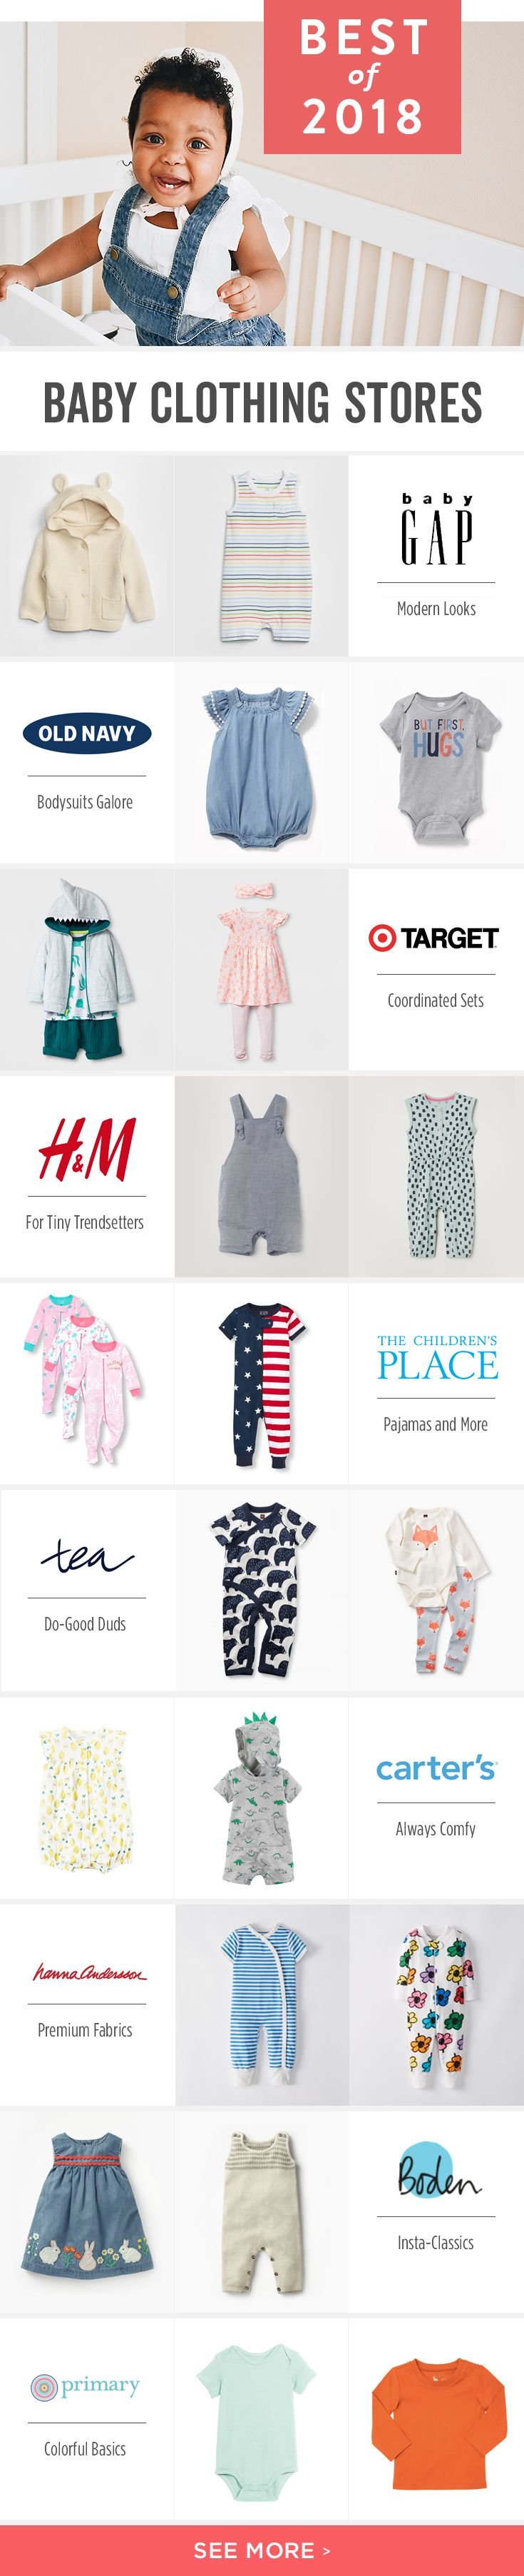 toddler clothing brands kids clothing companies